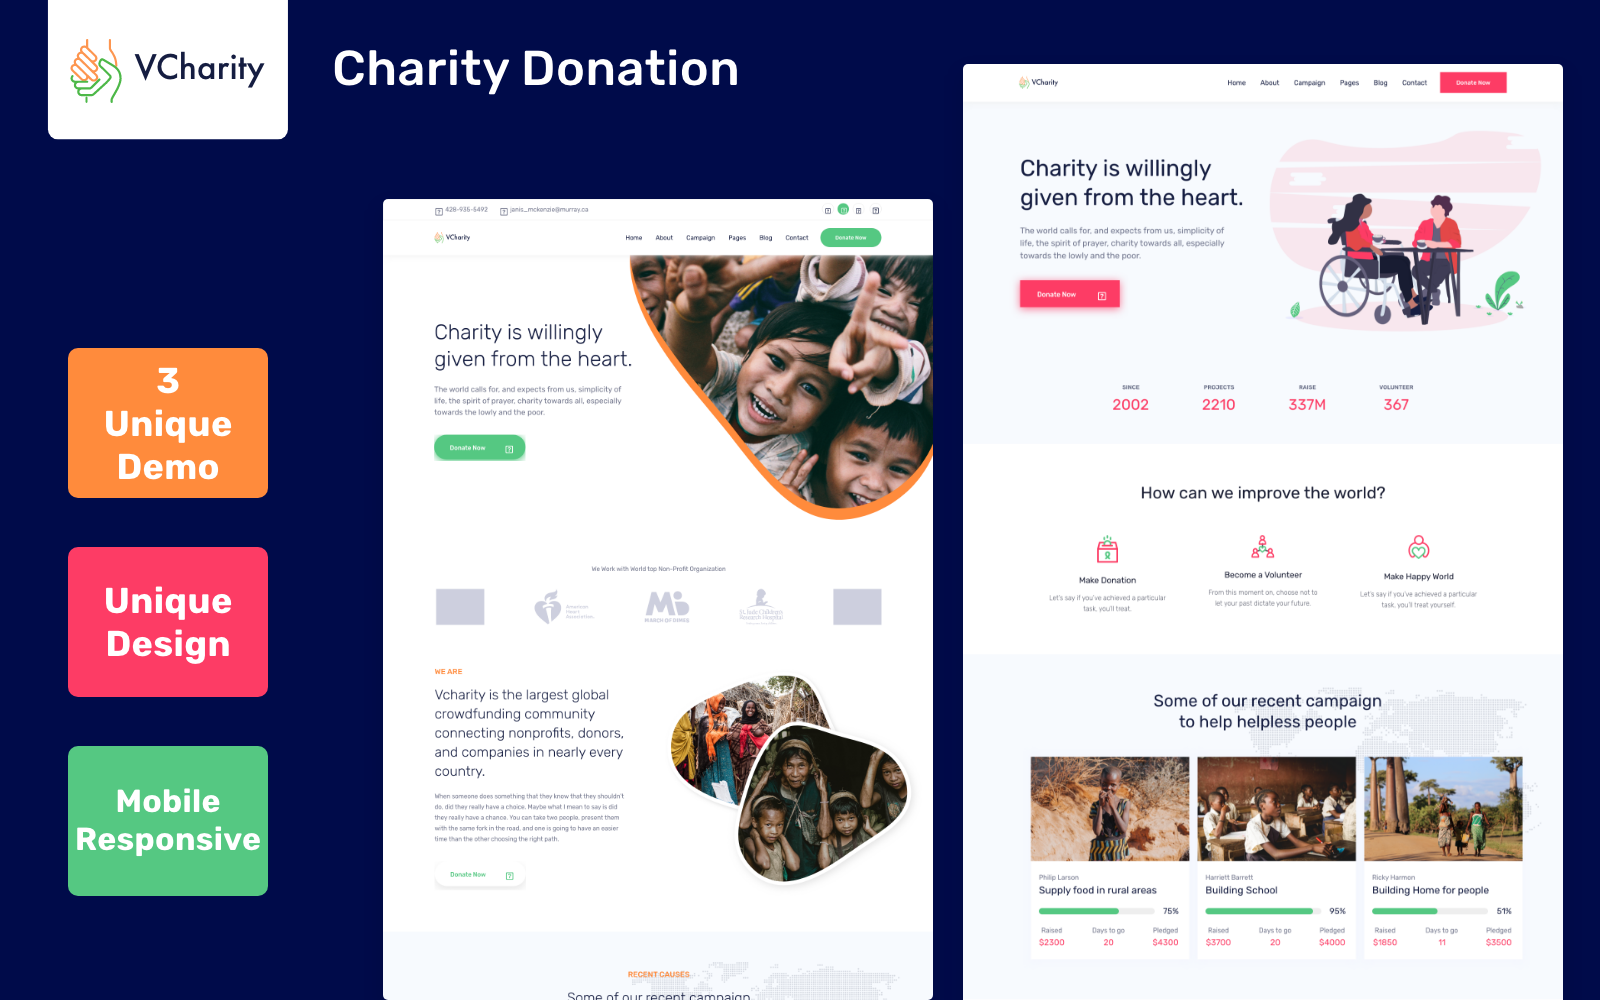 Bootstrap szablon strony www vCharity - Charity and Donation #100355